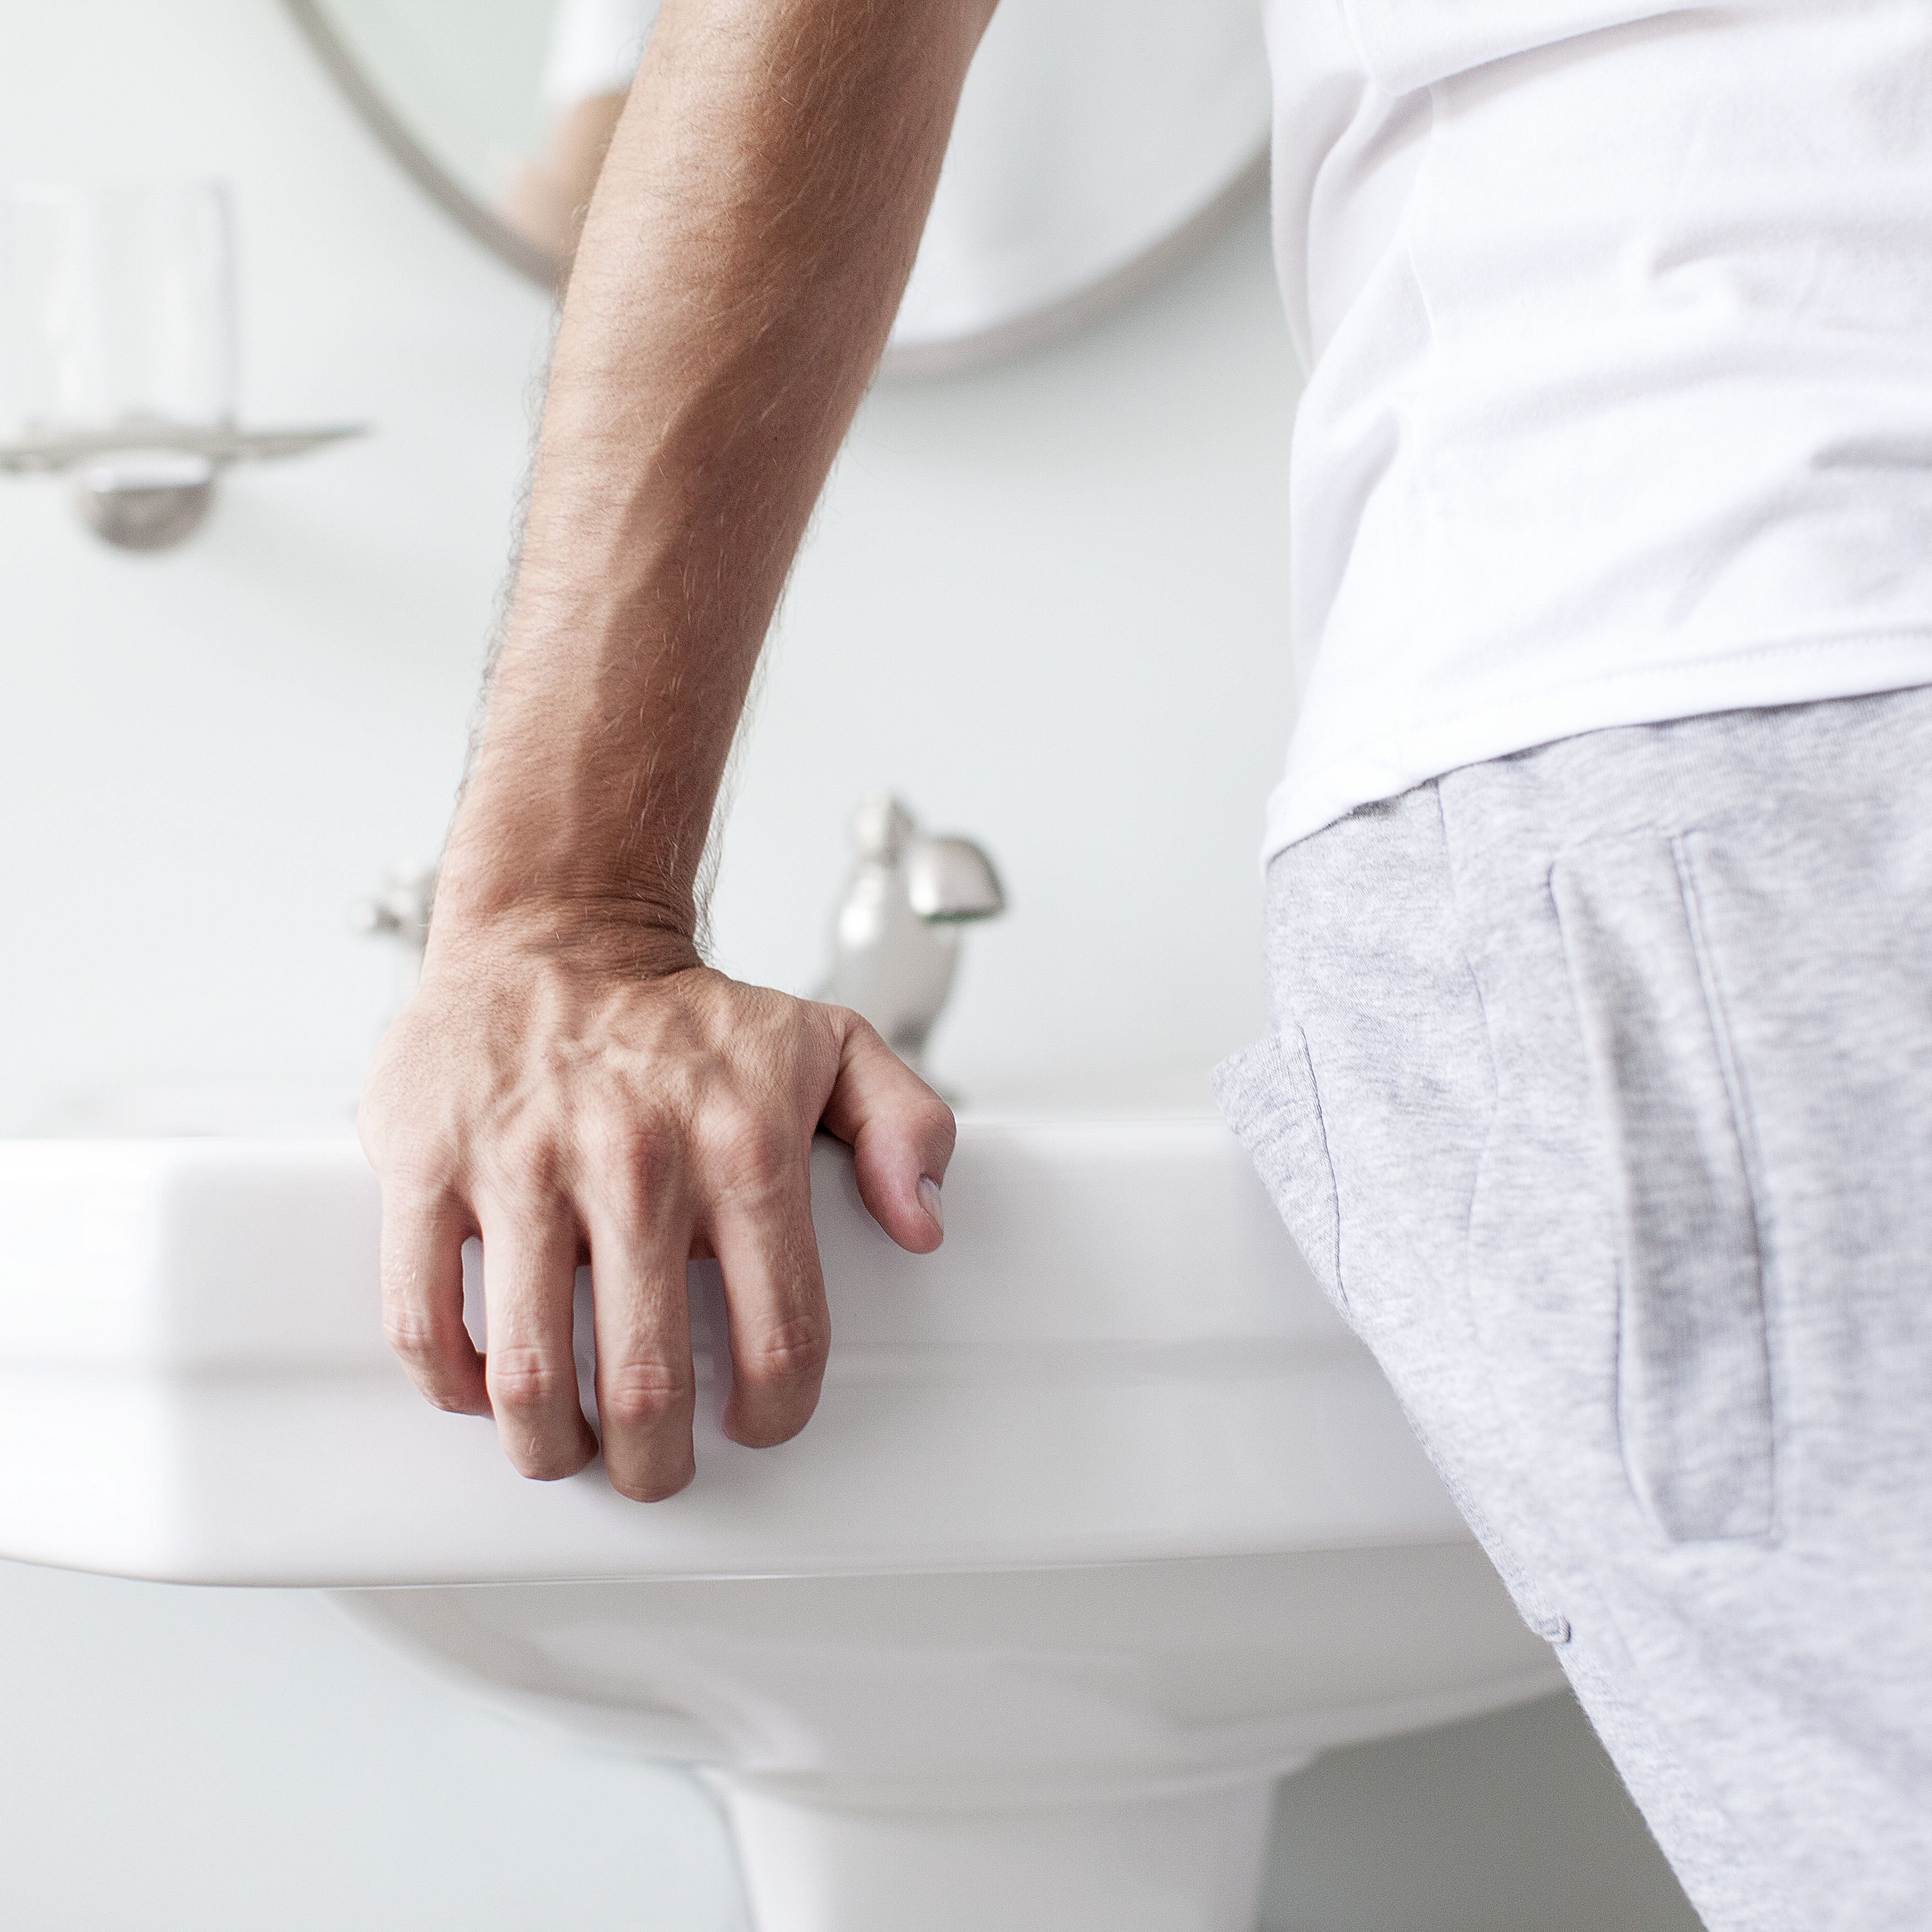 Irritable Bowel Syndrome and Mucus in Your Stool